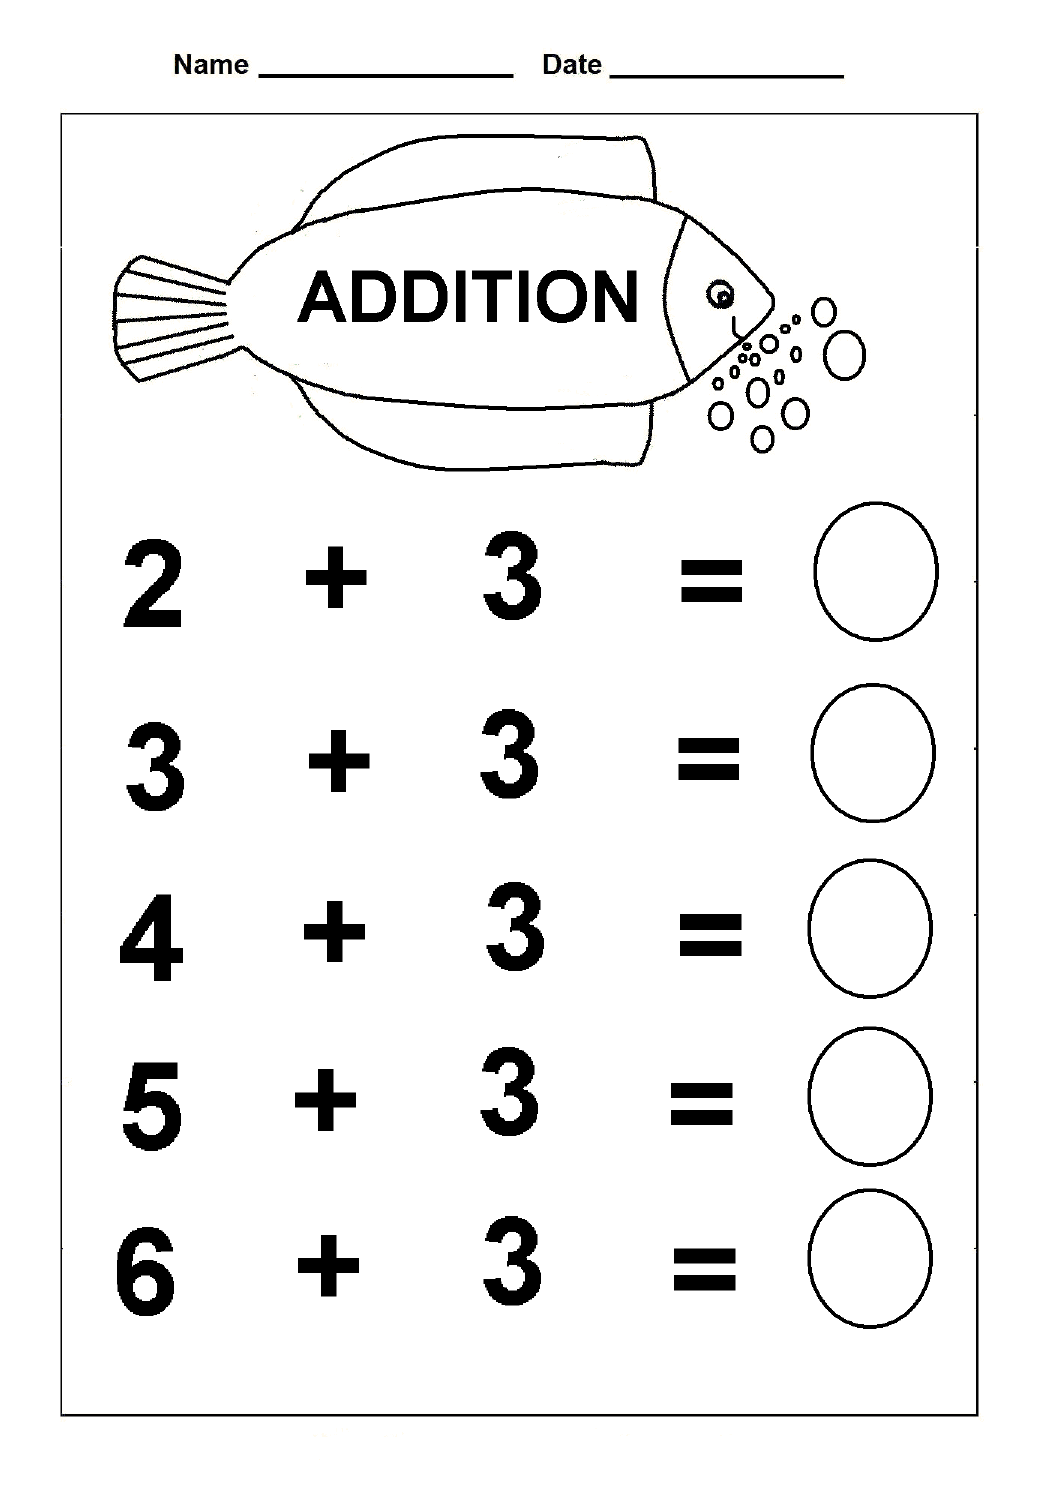 Simple Math Worksheets For Preschoolers : Free printable kindergarten math worksheets